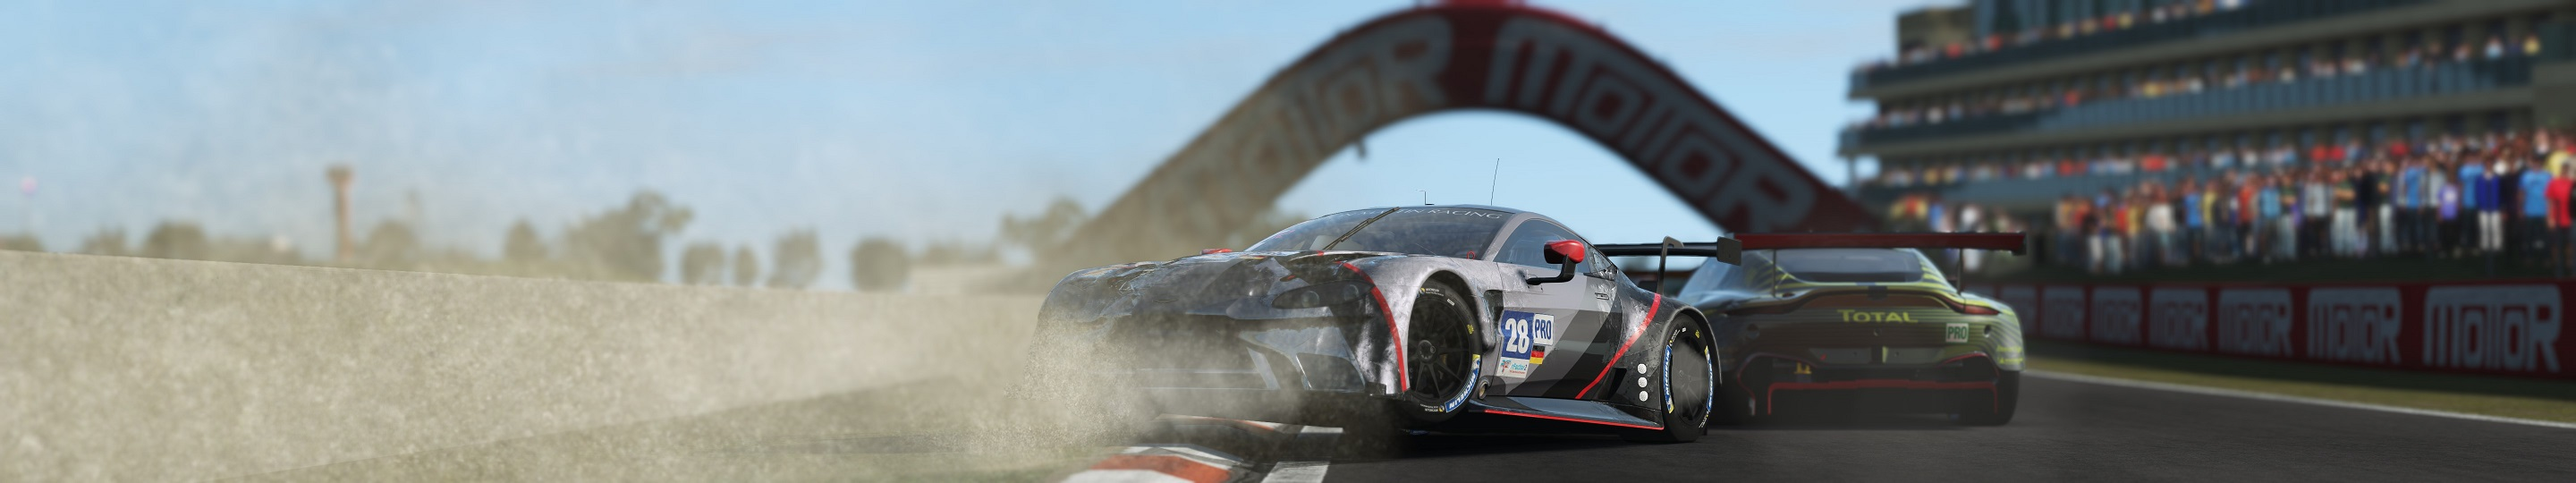 1a rF2 ASTON GTE at BATHURST copy.jpg